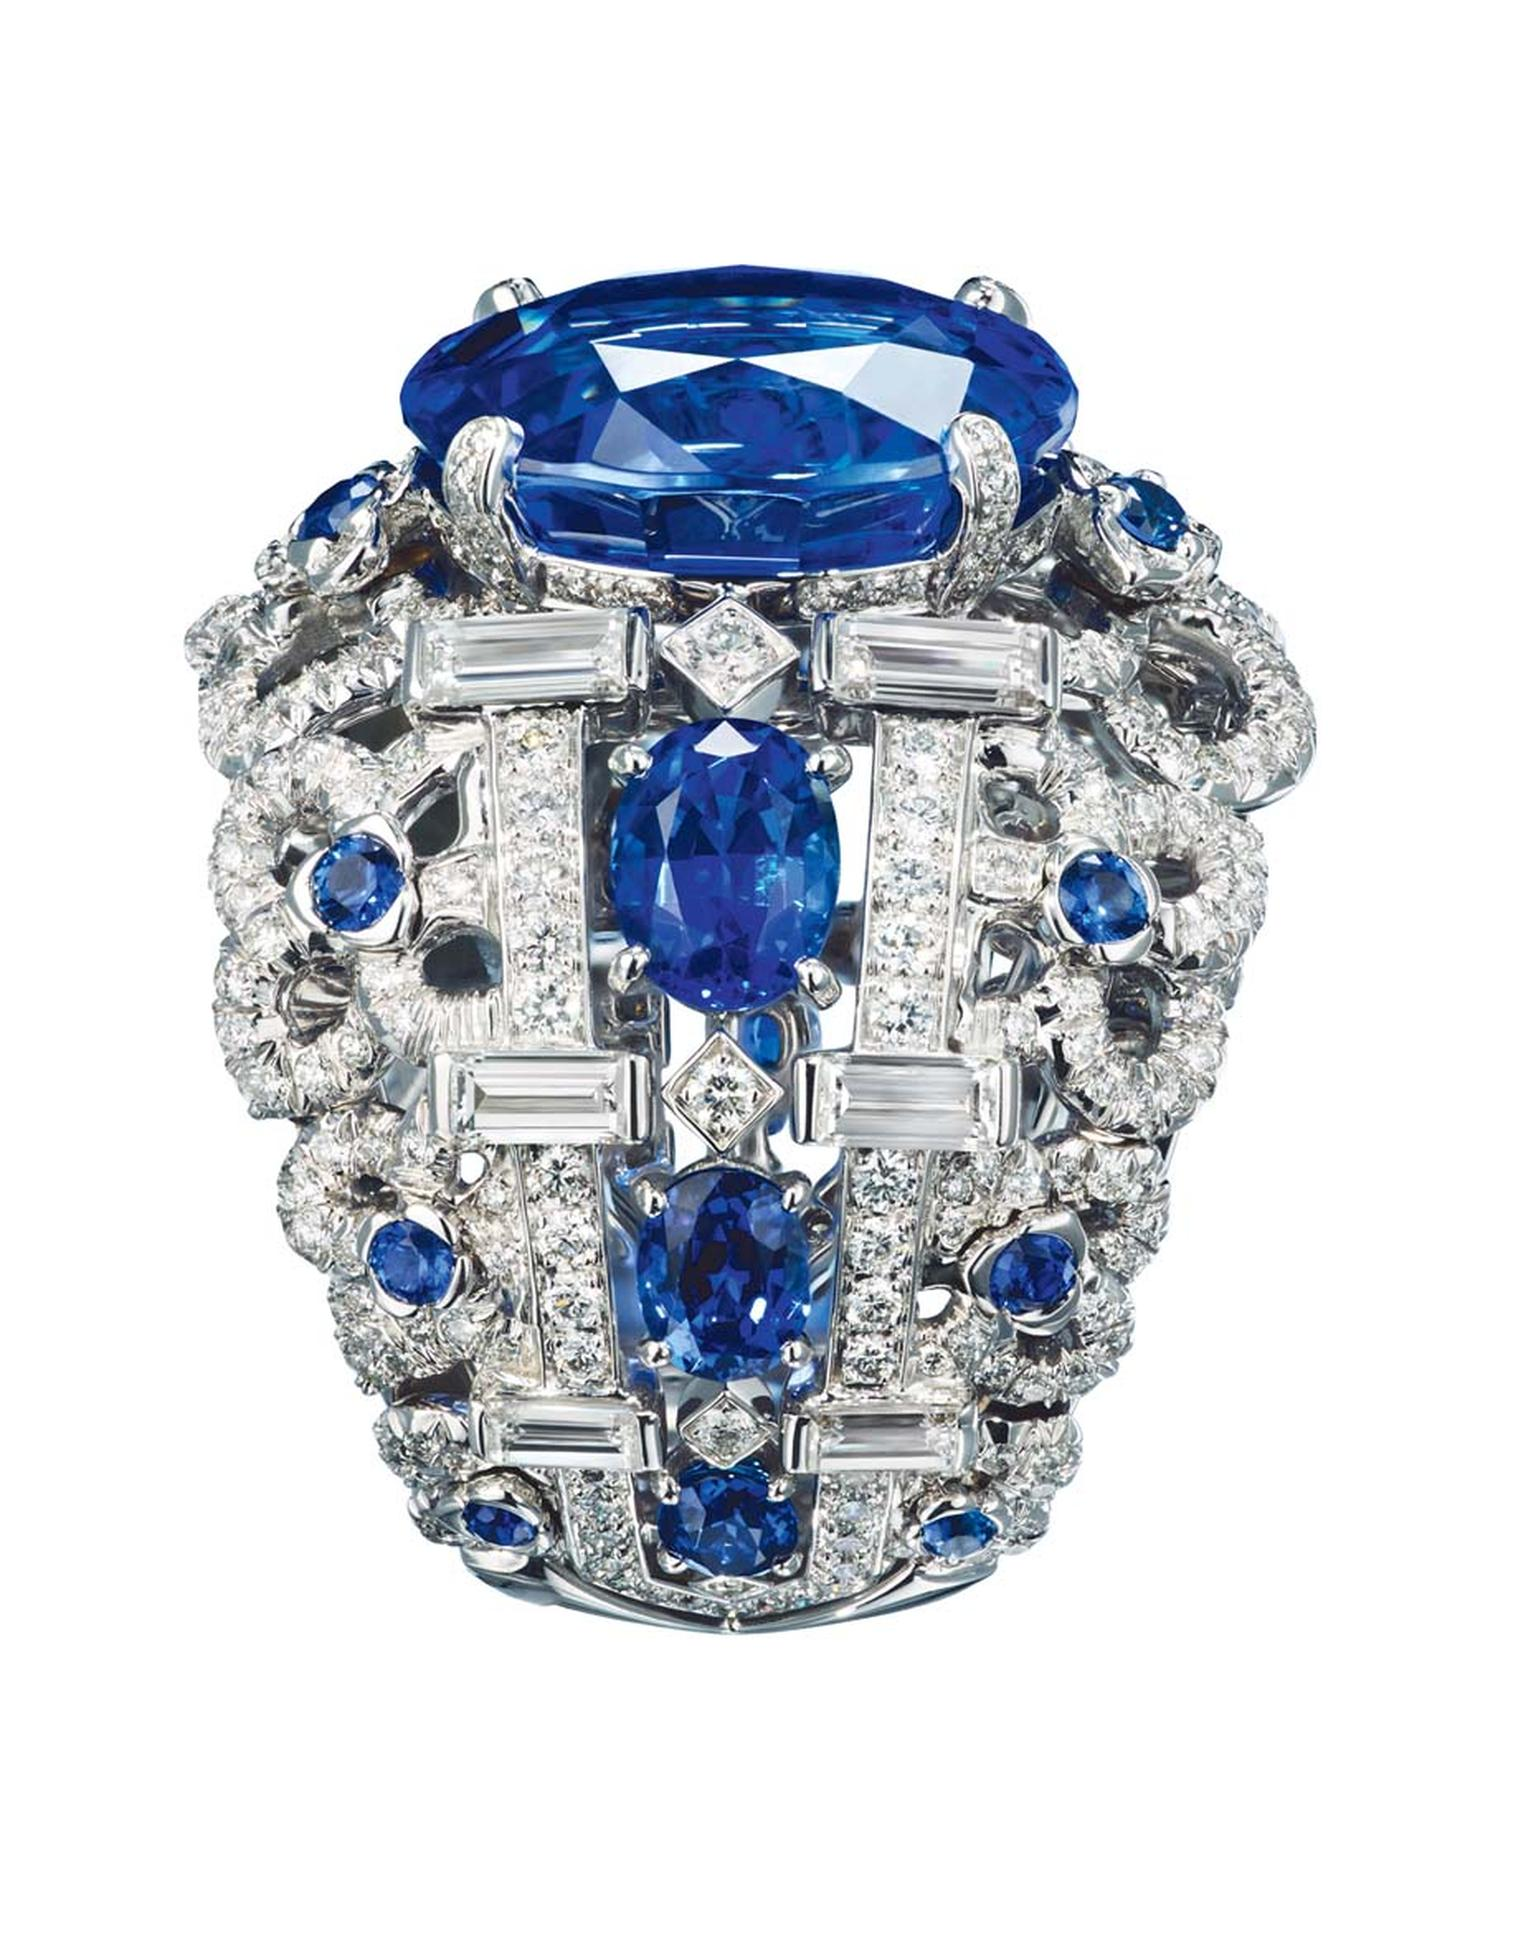 Chaumet Hortensia 18ct white gold ring, with brilliant, oval and baguette cut sapphires and diamonds and set with a 9.85ct oval-cut sapphire.